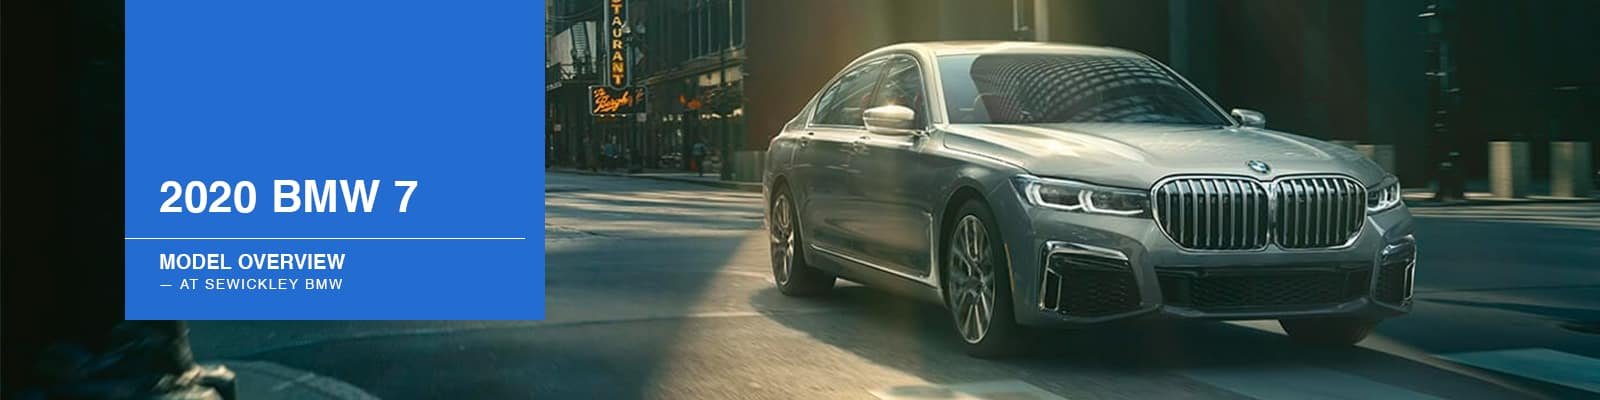 2020 BMW 7 Series Model Overview at Sewickley BMW